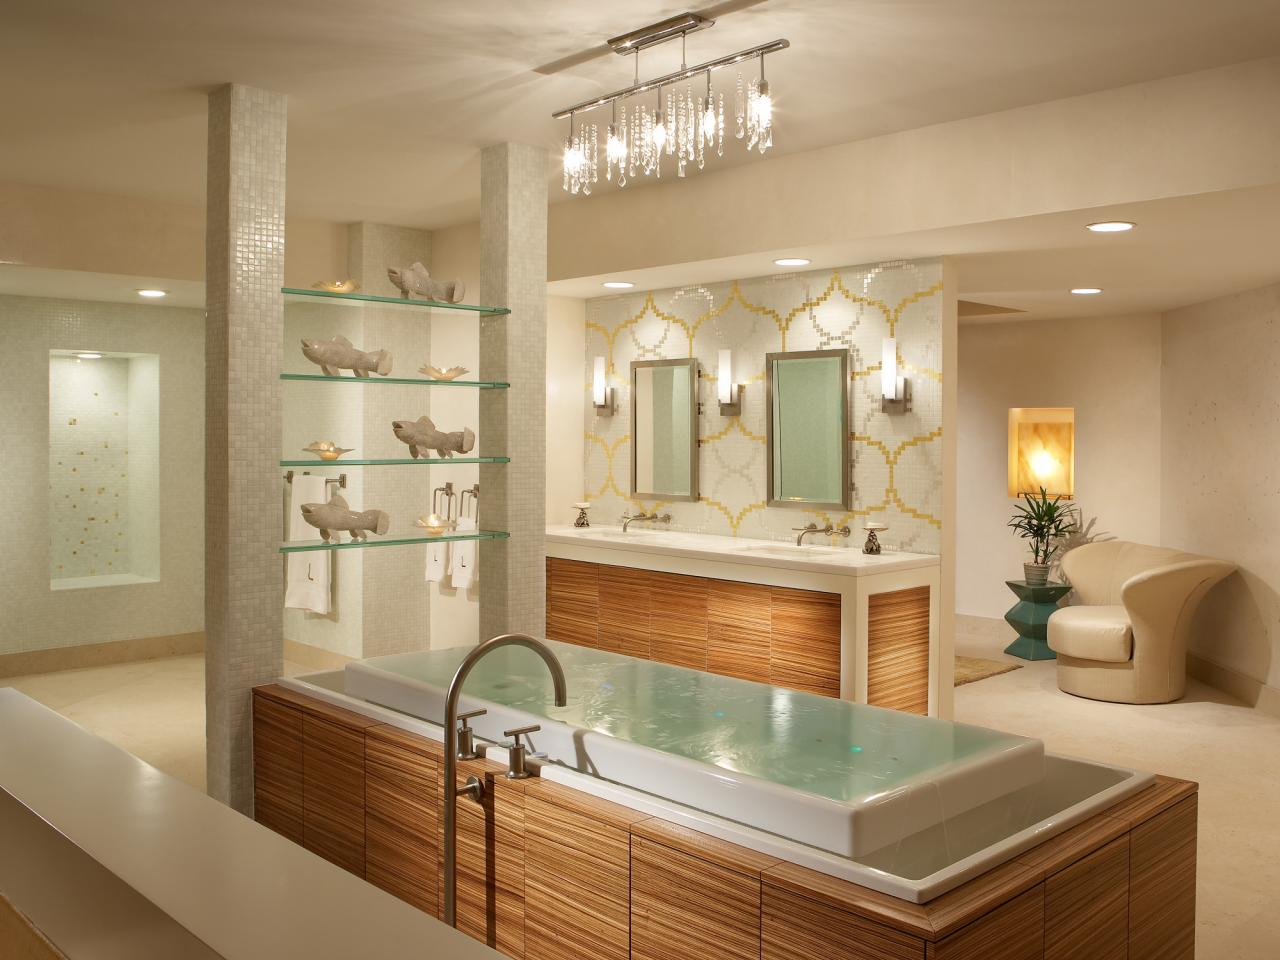 Bathroom lighting essentials guide adorable home luxury bathroom aloadofball Gallery